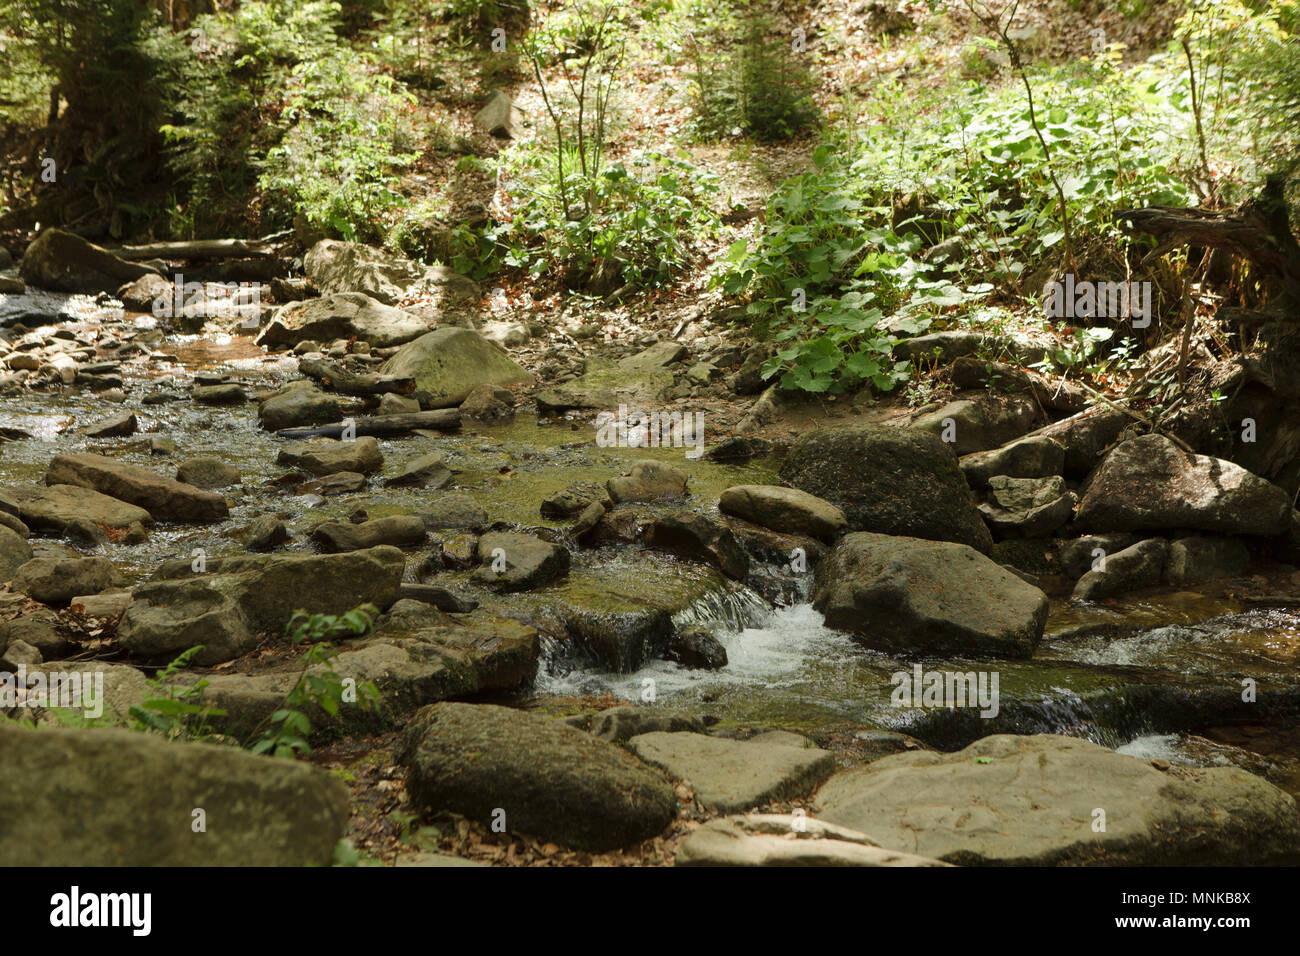 small river in europen mountins - Stock Image